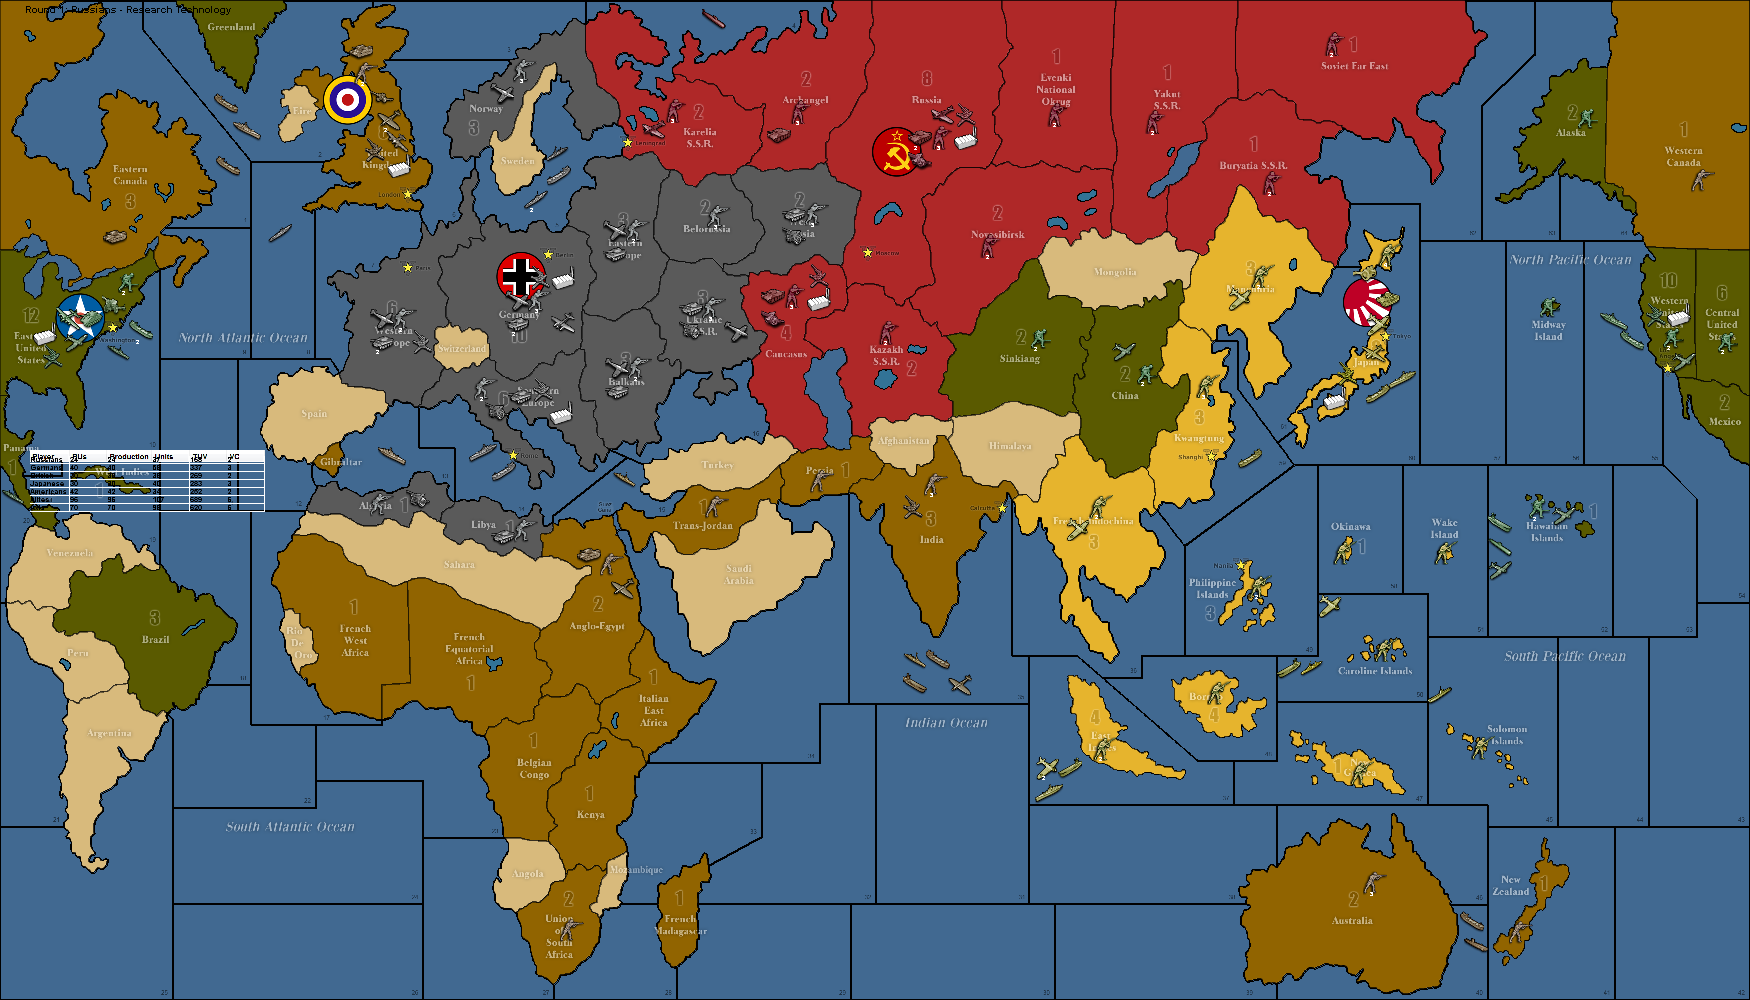 World War II Revised Axis Allies Wiki FANDOM powered by Wikia